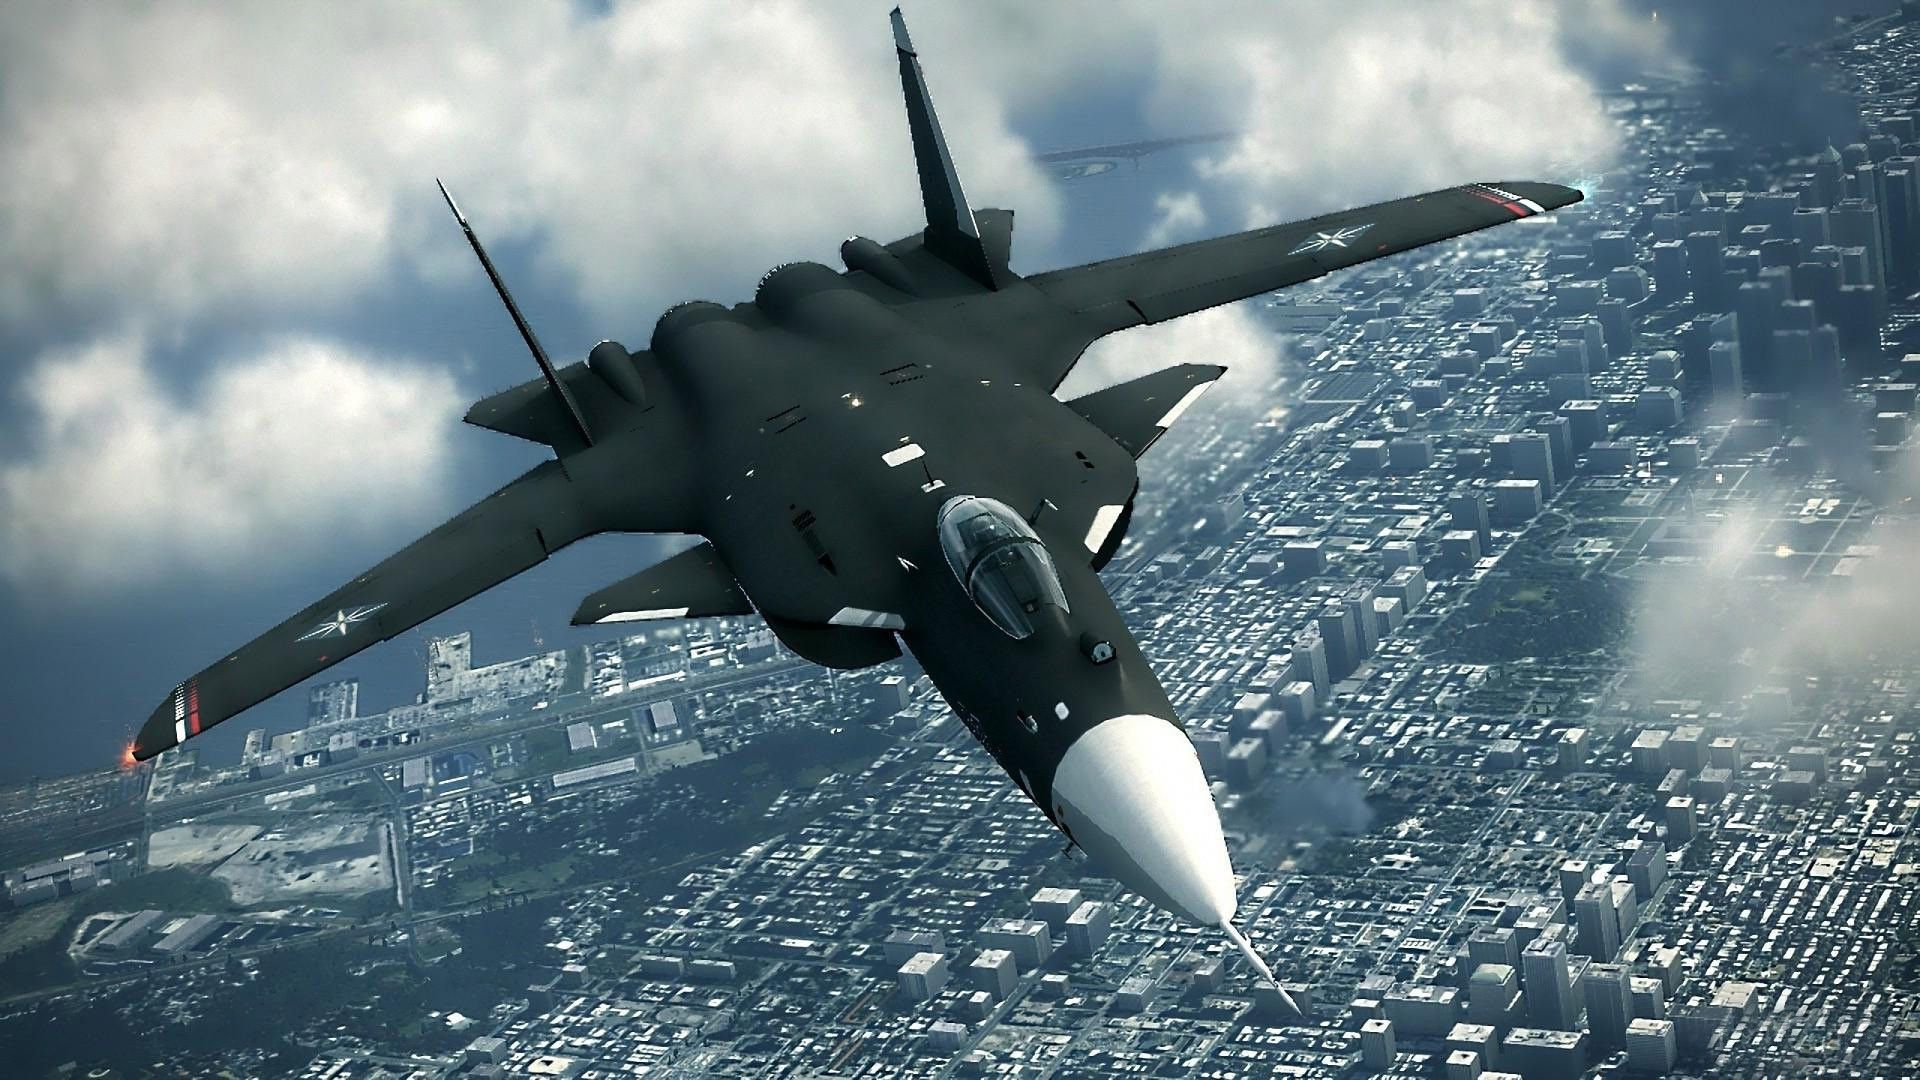 50 sukhoi t 50 pak fa wallpapers hd desktop and mobile backgrounds - Hd Russian Fighter The Su 47 Berkut Wallpaper Russian Fighter The Su 47 Berkut Wallpapers Hd Pinterest Russian Fighter And Wallpaper